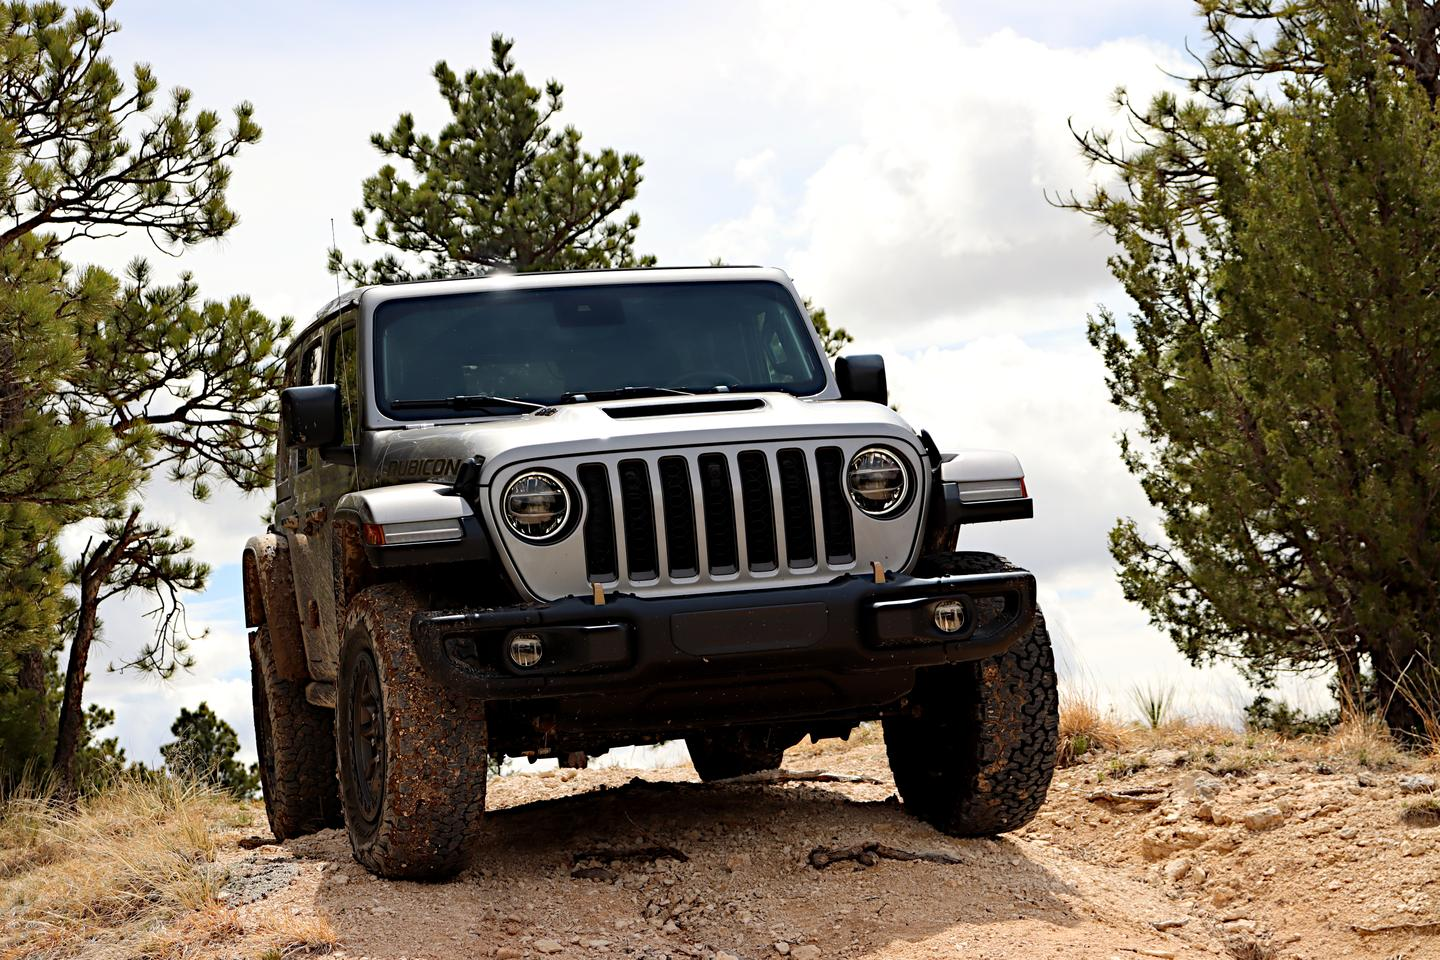 One of our chief complaints about the Wrangler 392 is its tendency to bottom out the front suspension quicker than does a V6-powered Jeep